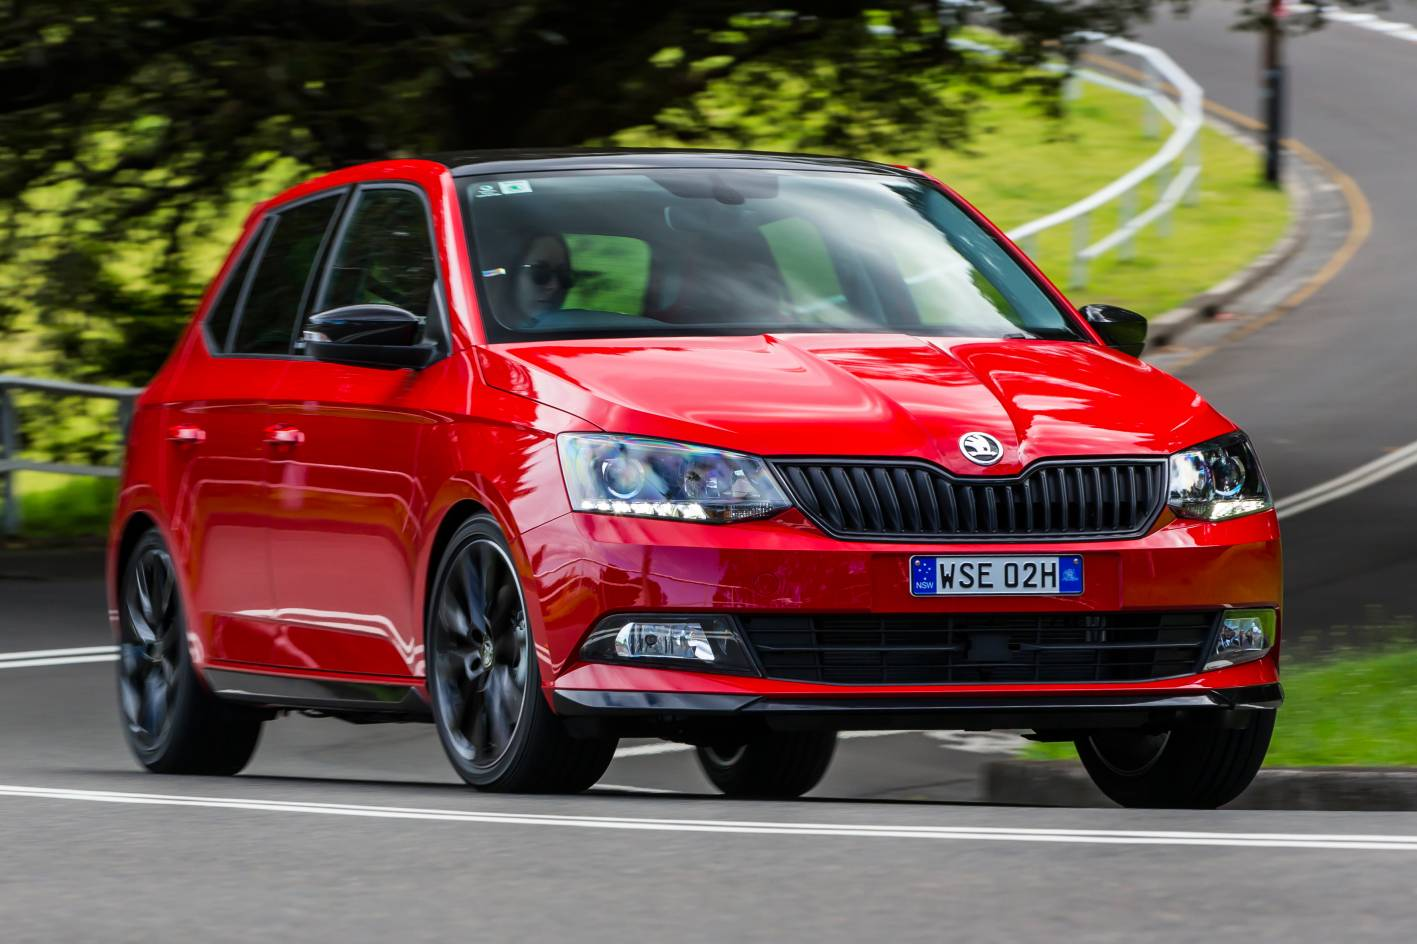 skoda fabia monte carlo honours rally spirit. Black Bedroom Furniture Sets. Home Design Ideas